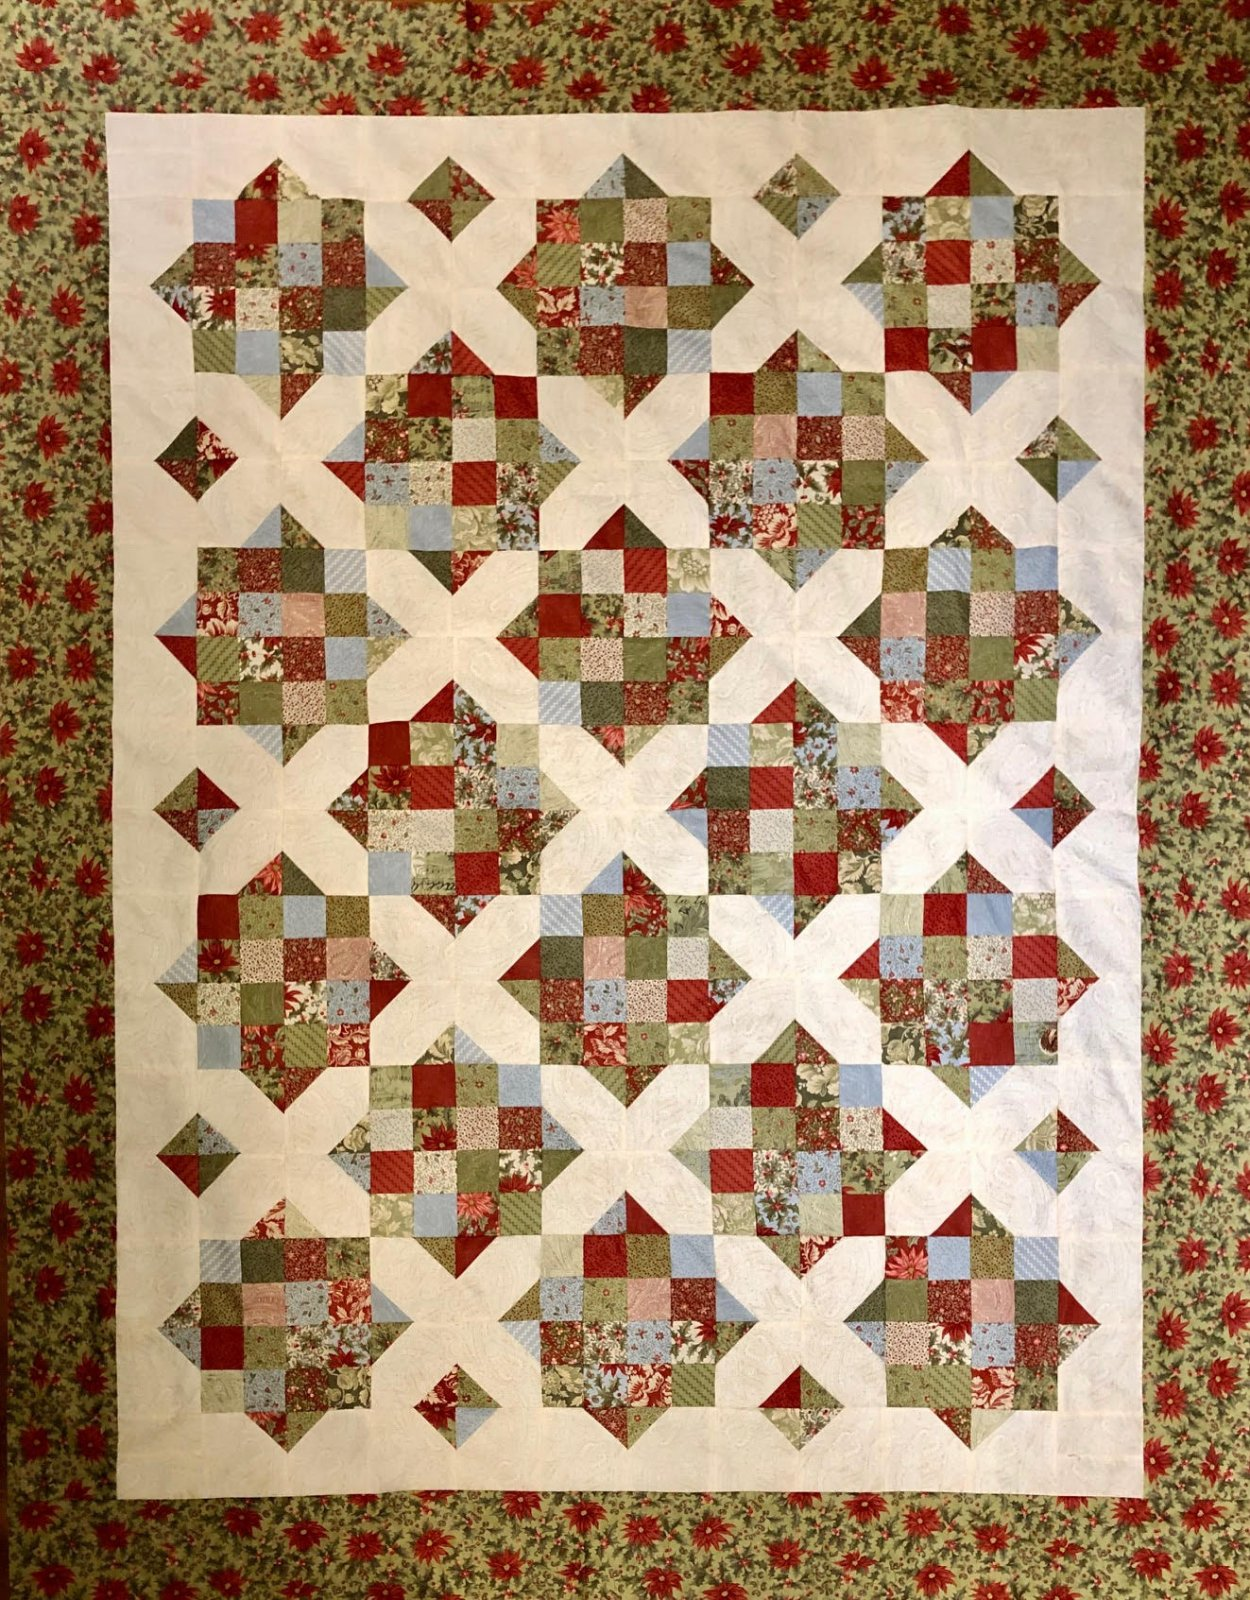 Marches De Noel Quilt Kit